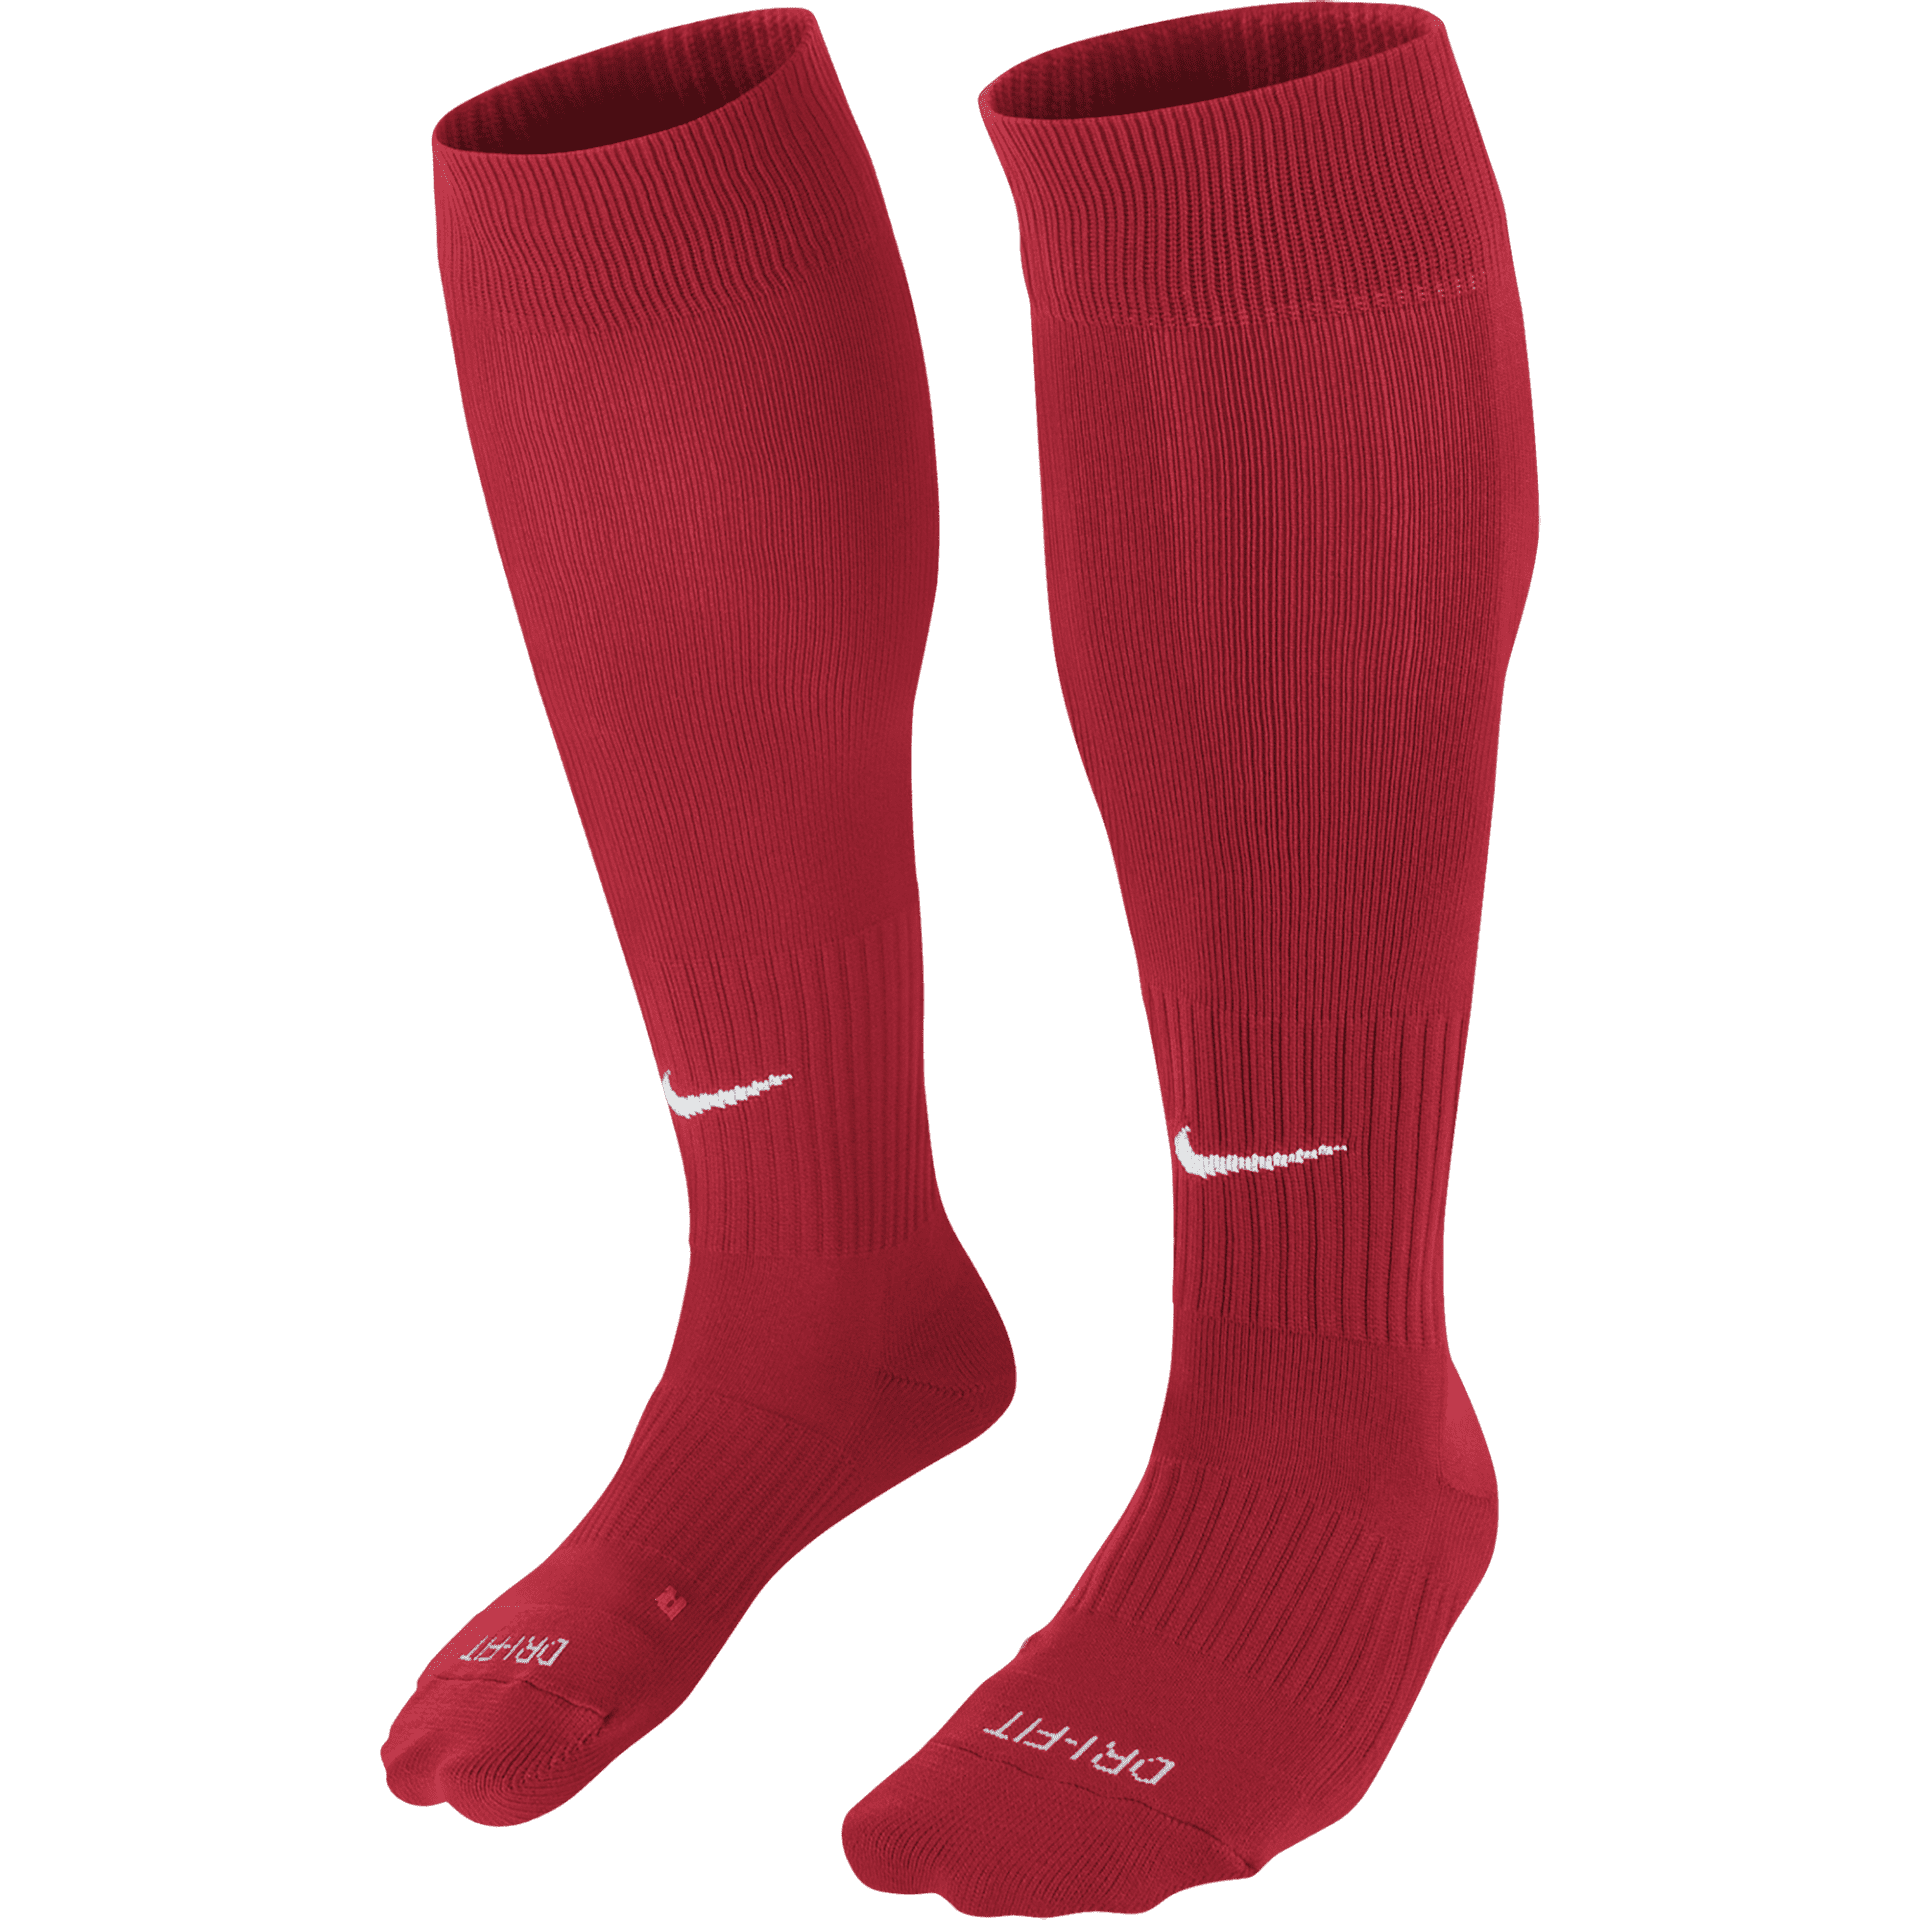 fivemiletown utd socks red size 8 12 34381 p